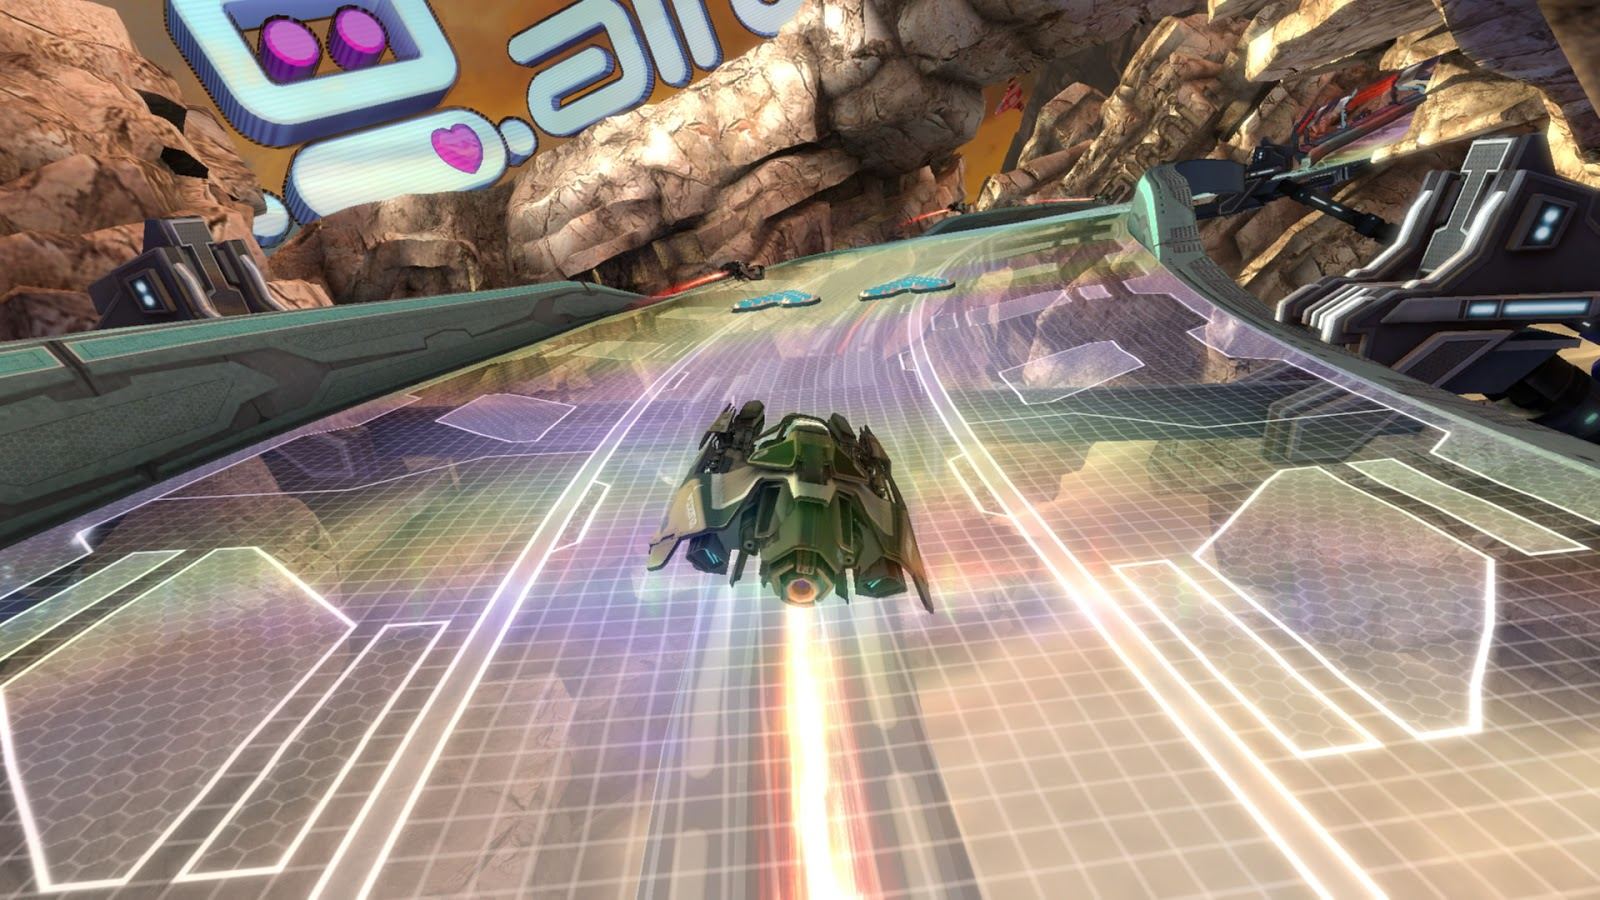 Circuito Wipeout : Navar world análisis wipeout hd fury psn